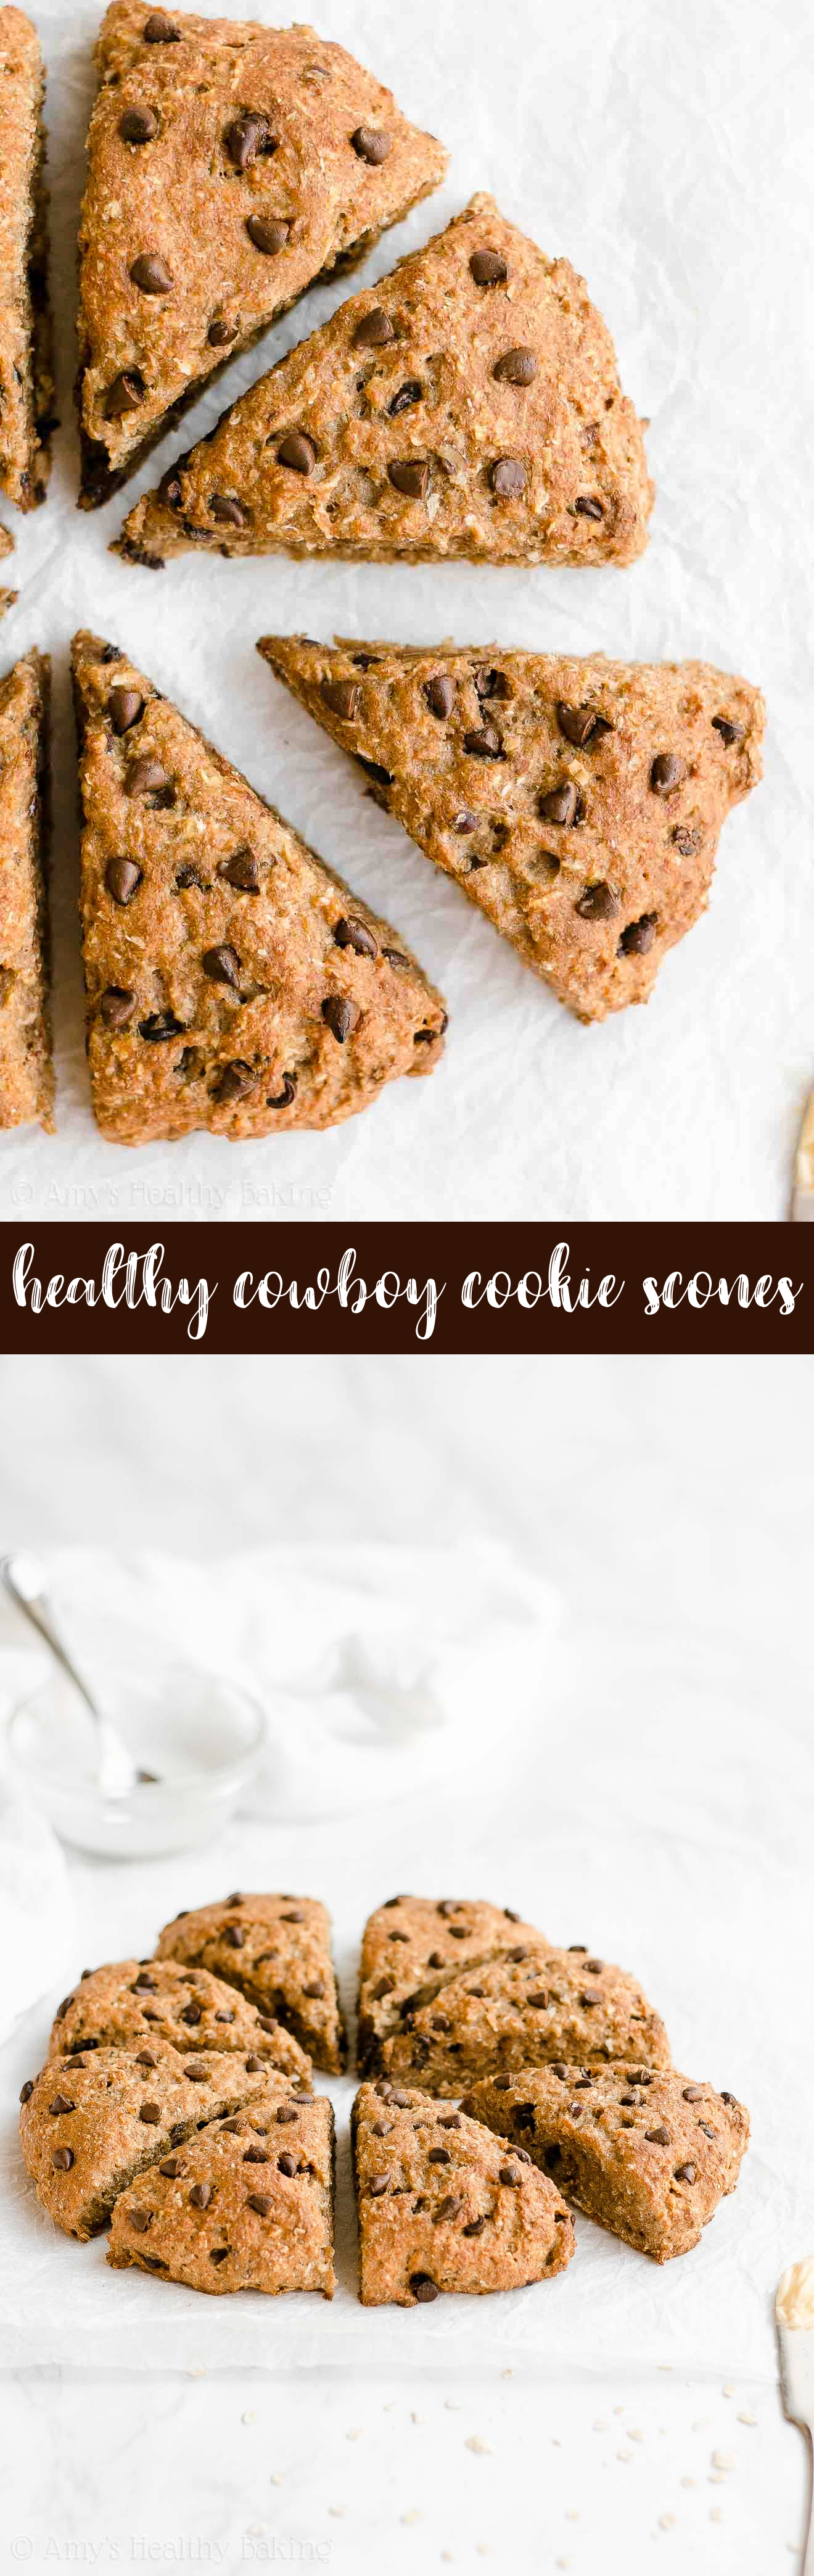 Best Healthy Clean Eating Greek Yogurt Cowboy Cookie Scones